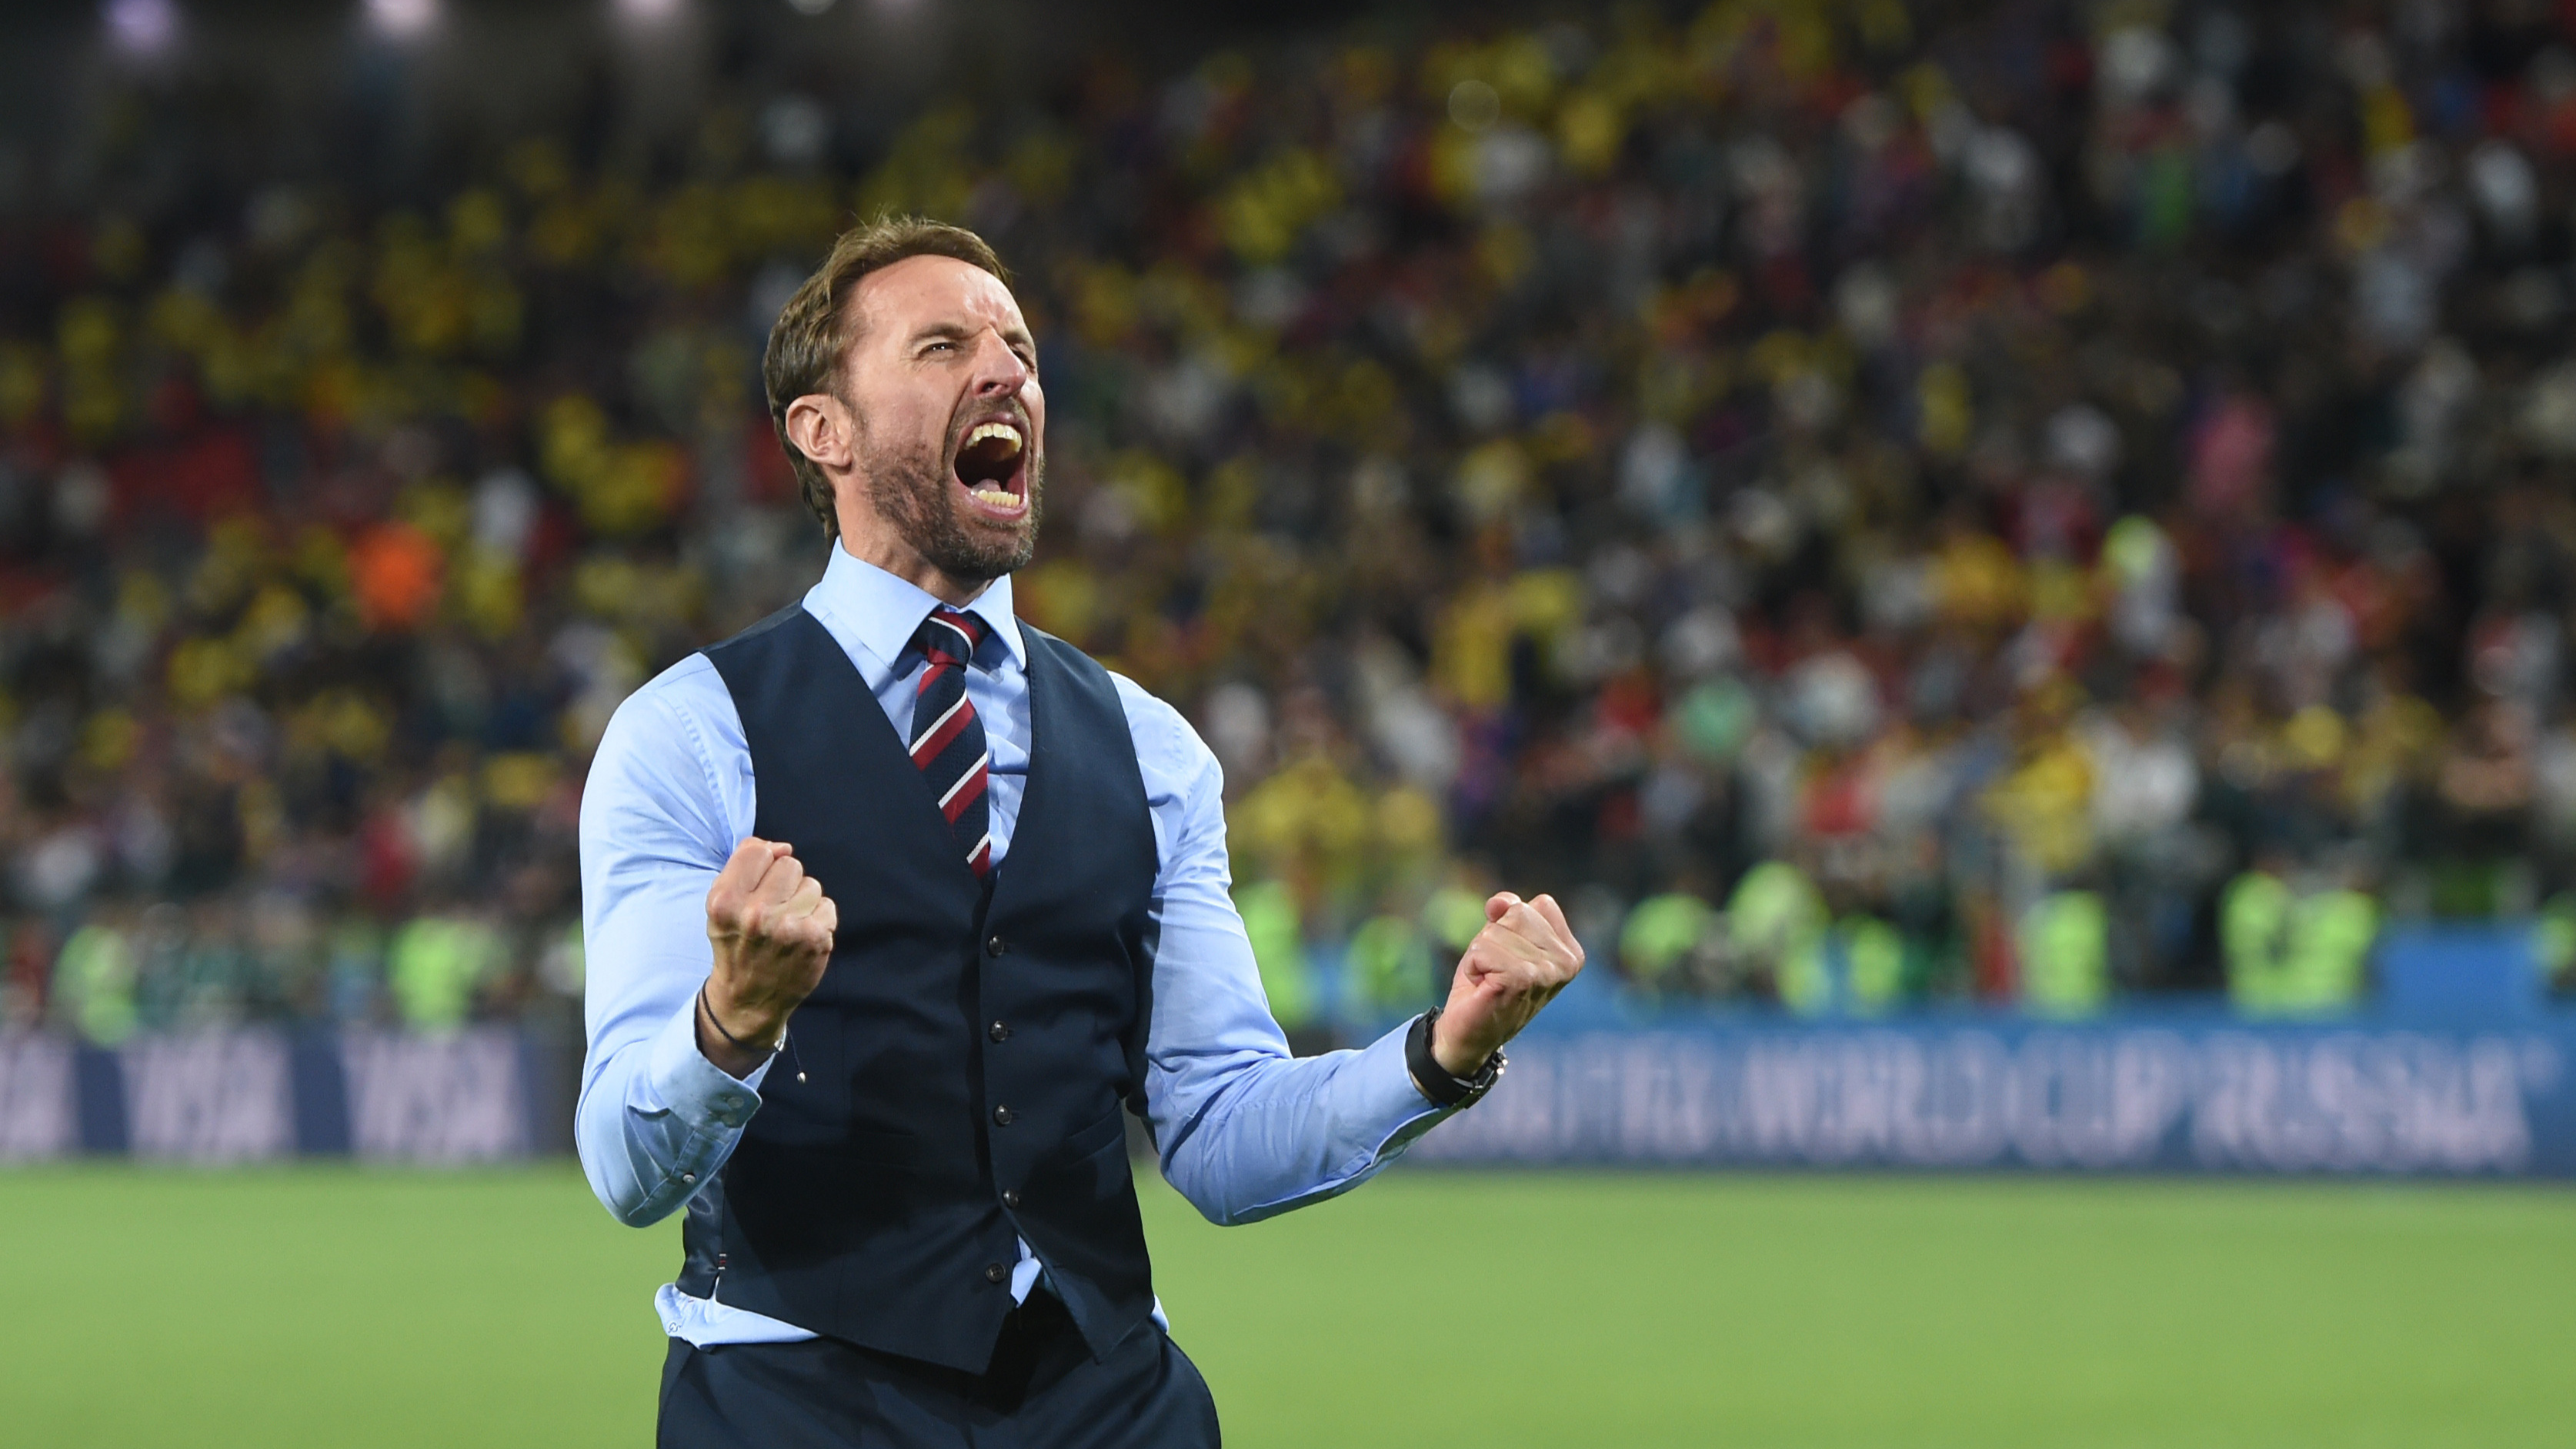 Photoshopped Custom Waistcoat Worn By Gareth Southgate Goes Viral